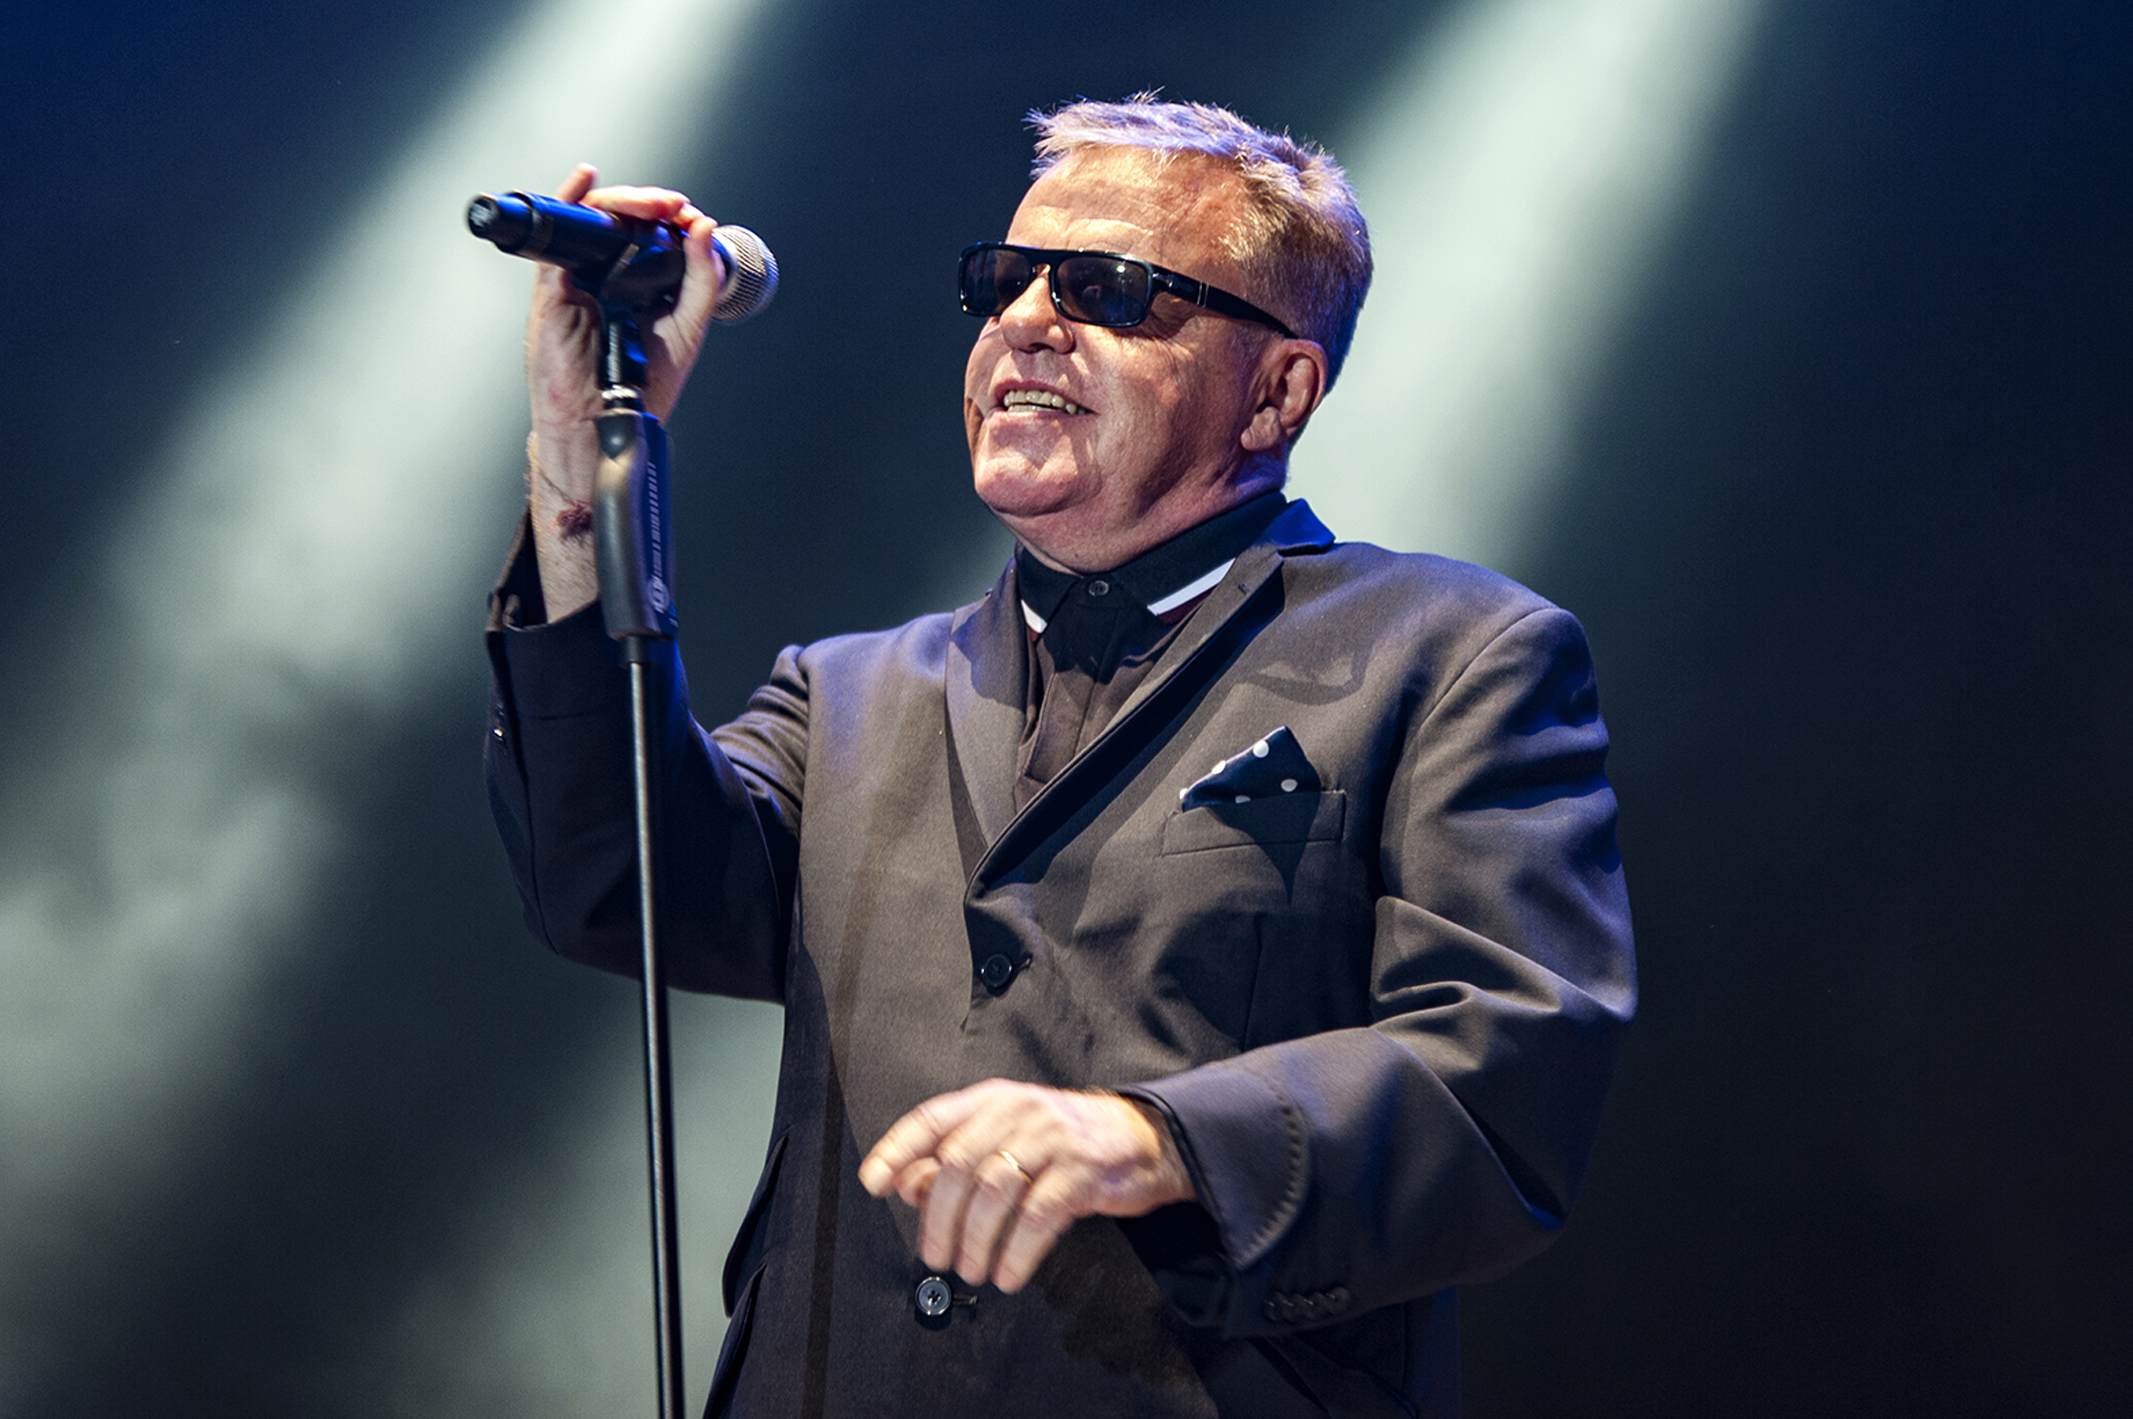 Suggs on stage on Saturday night.